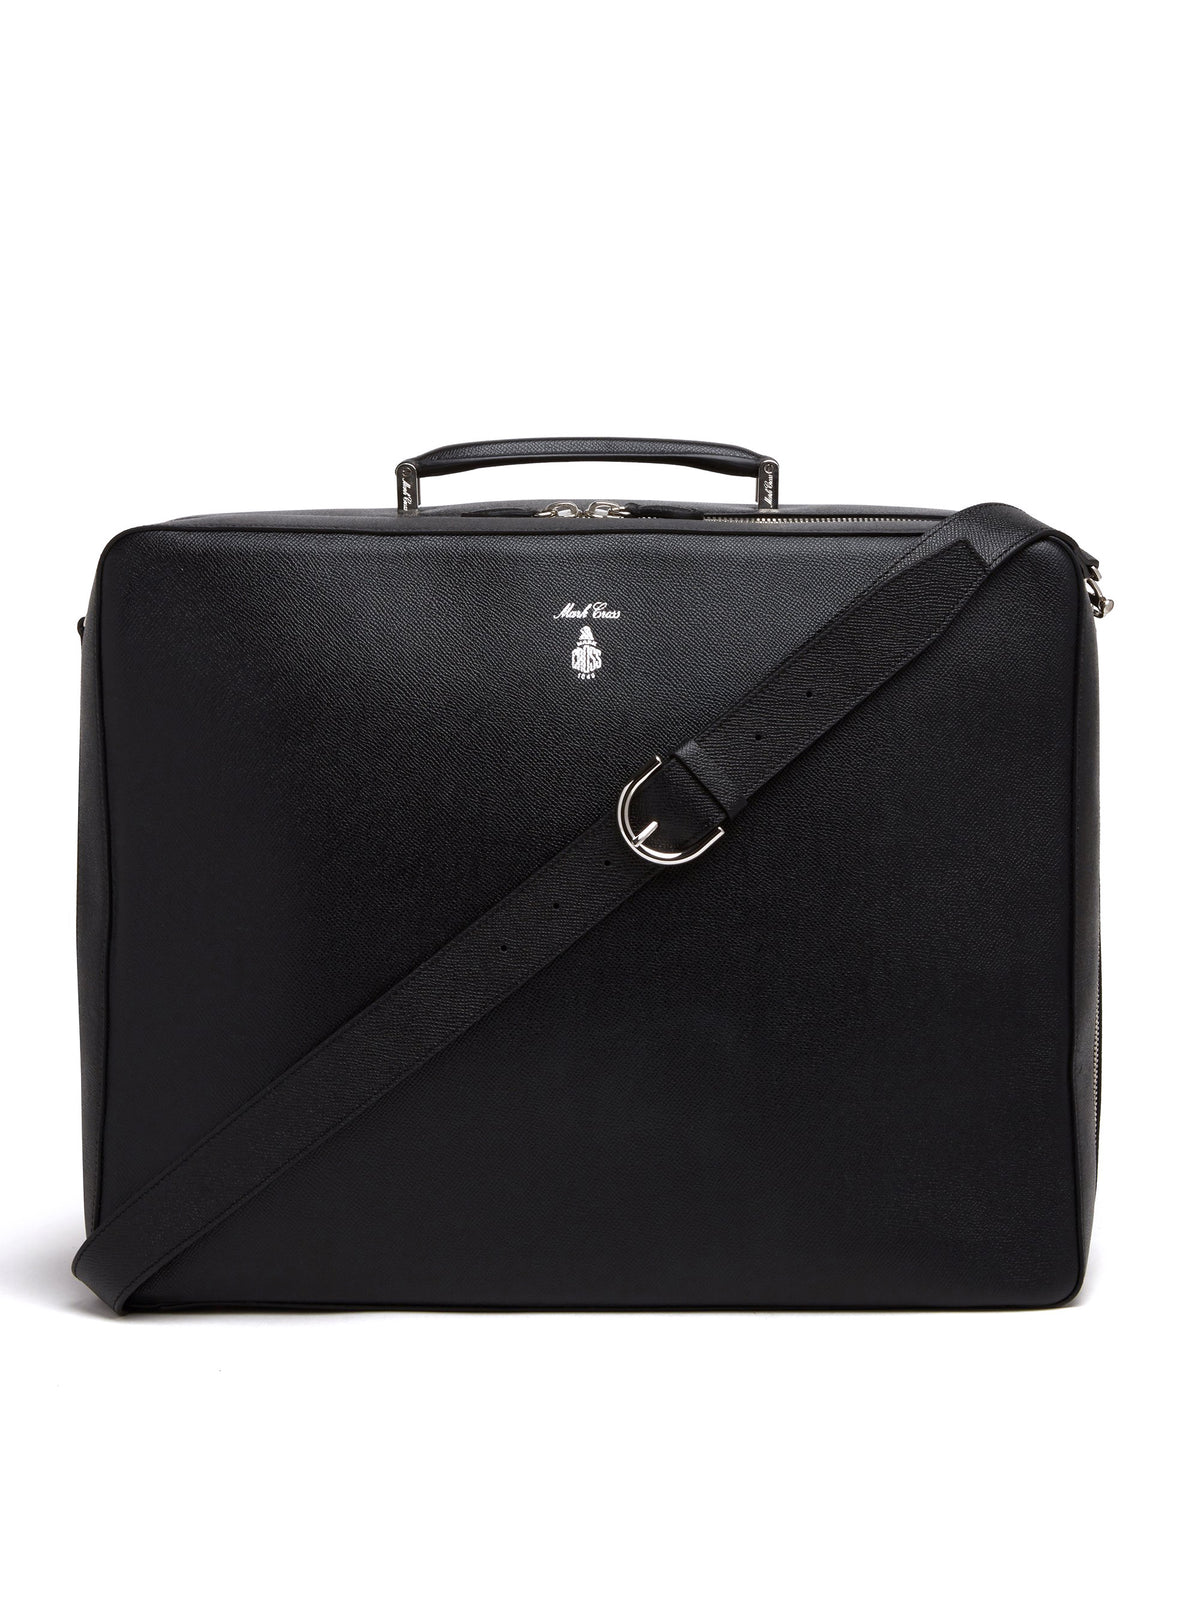 Mark Cross Baker Leather Overnight Bag Saffiano Black Front